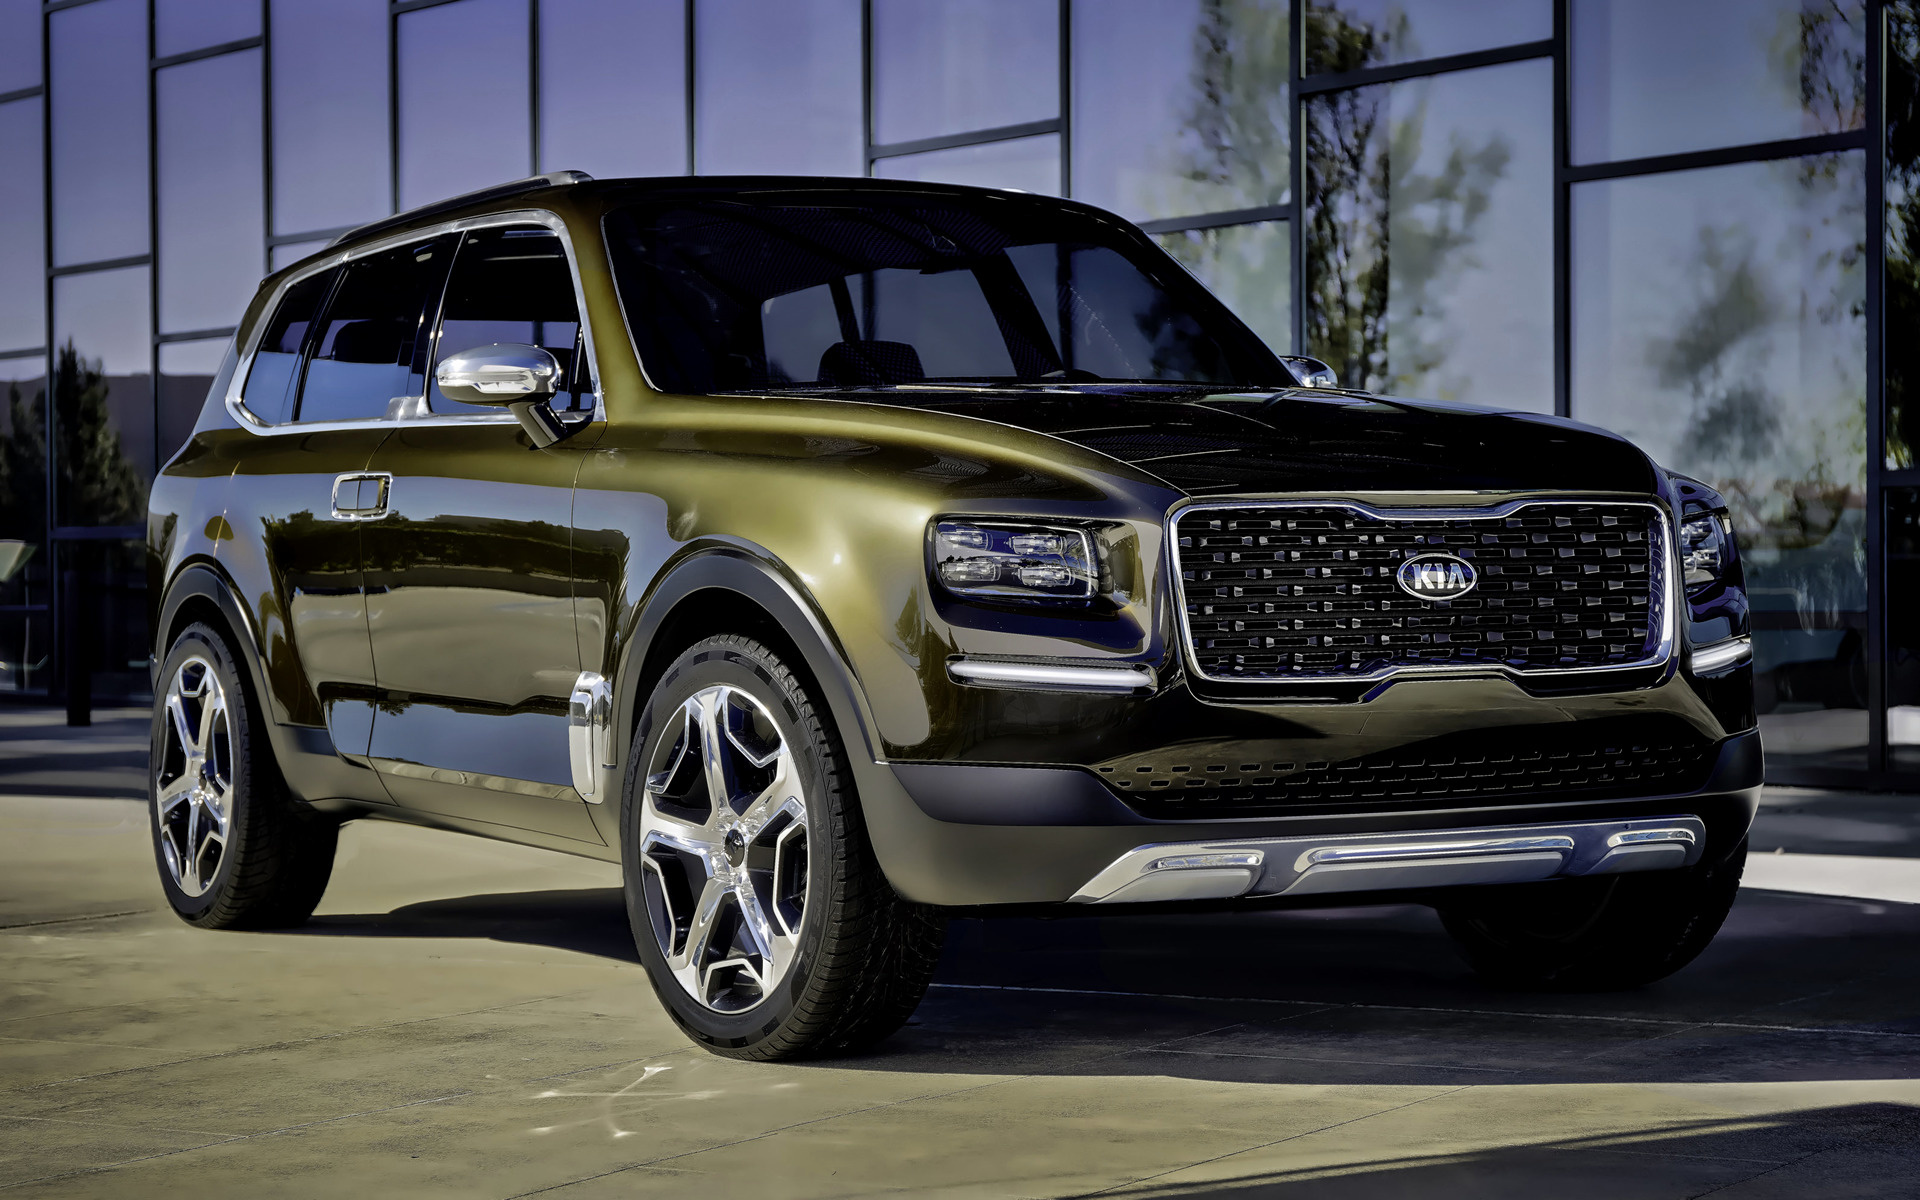 2016 Kia Telluride Concept   Wallpapers and HD Images Car Pixel 1920x1200